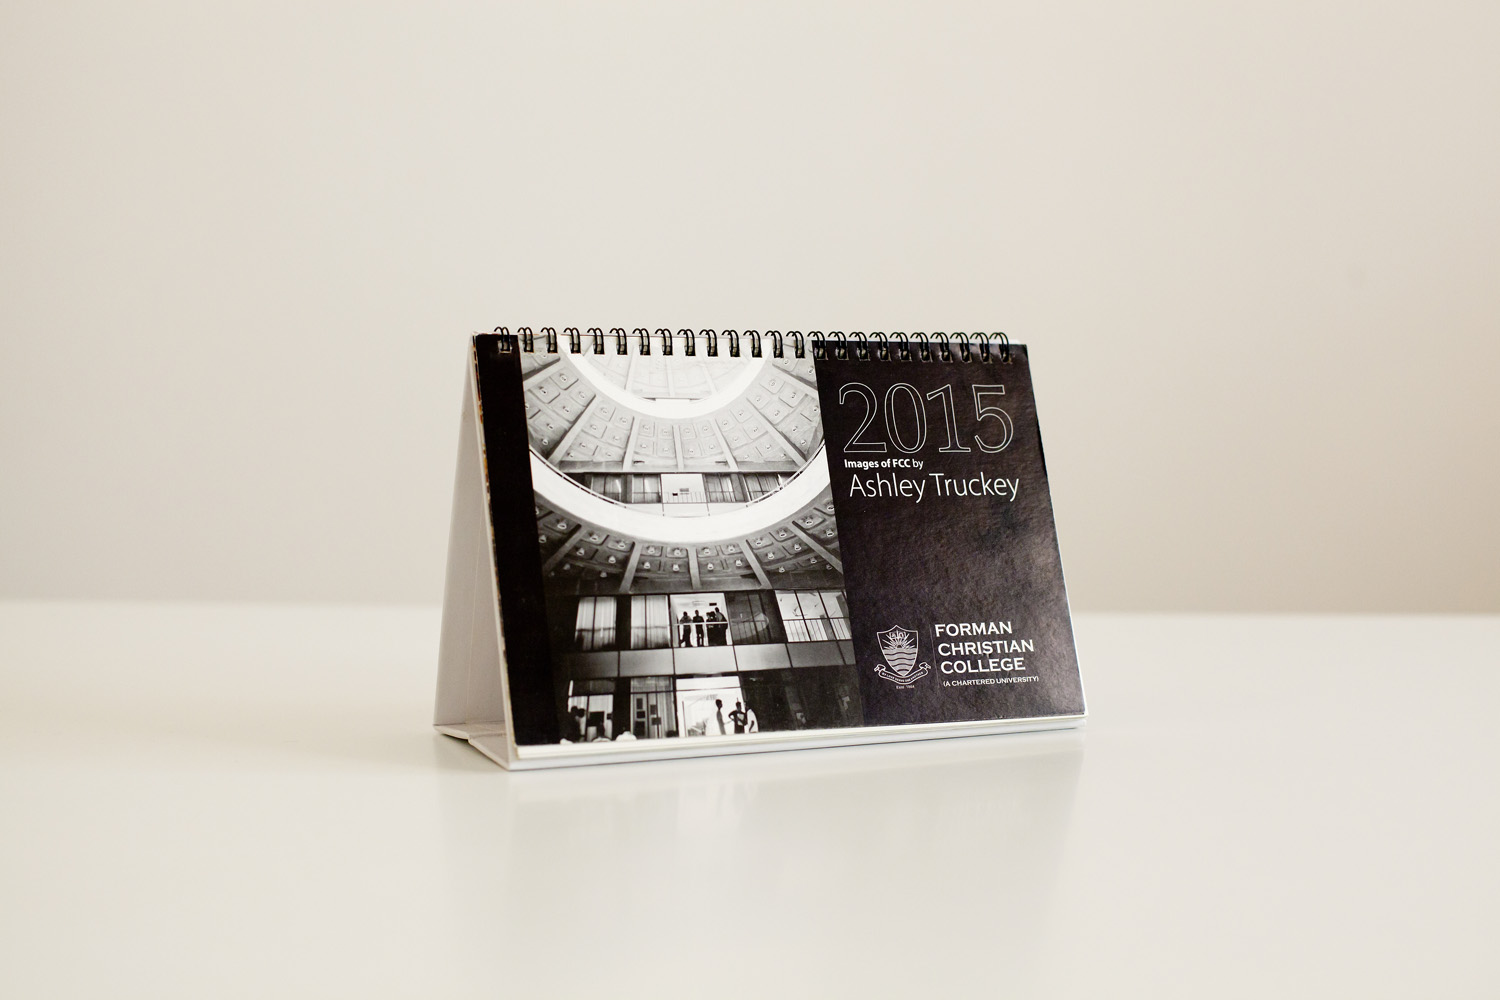 After the 2014 exhibition, the university used the images for their 2015-2016 calendar.